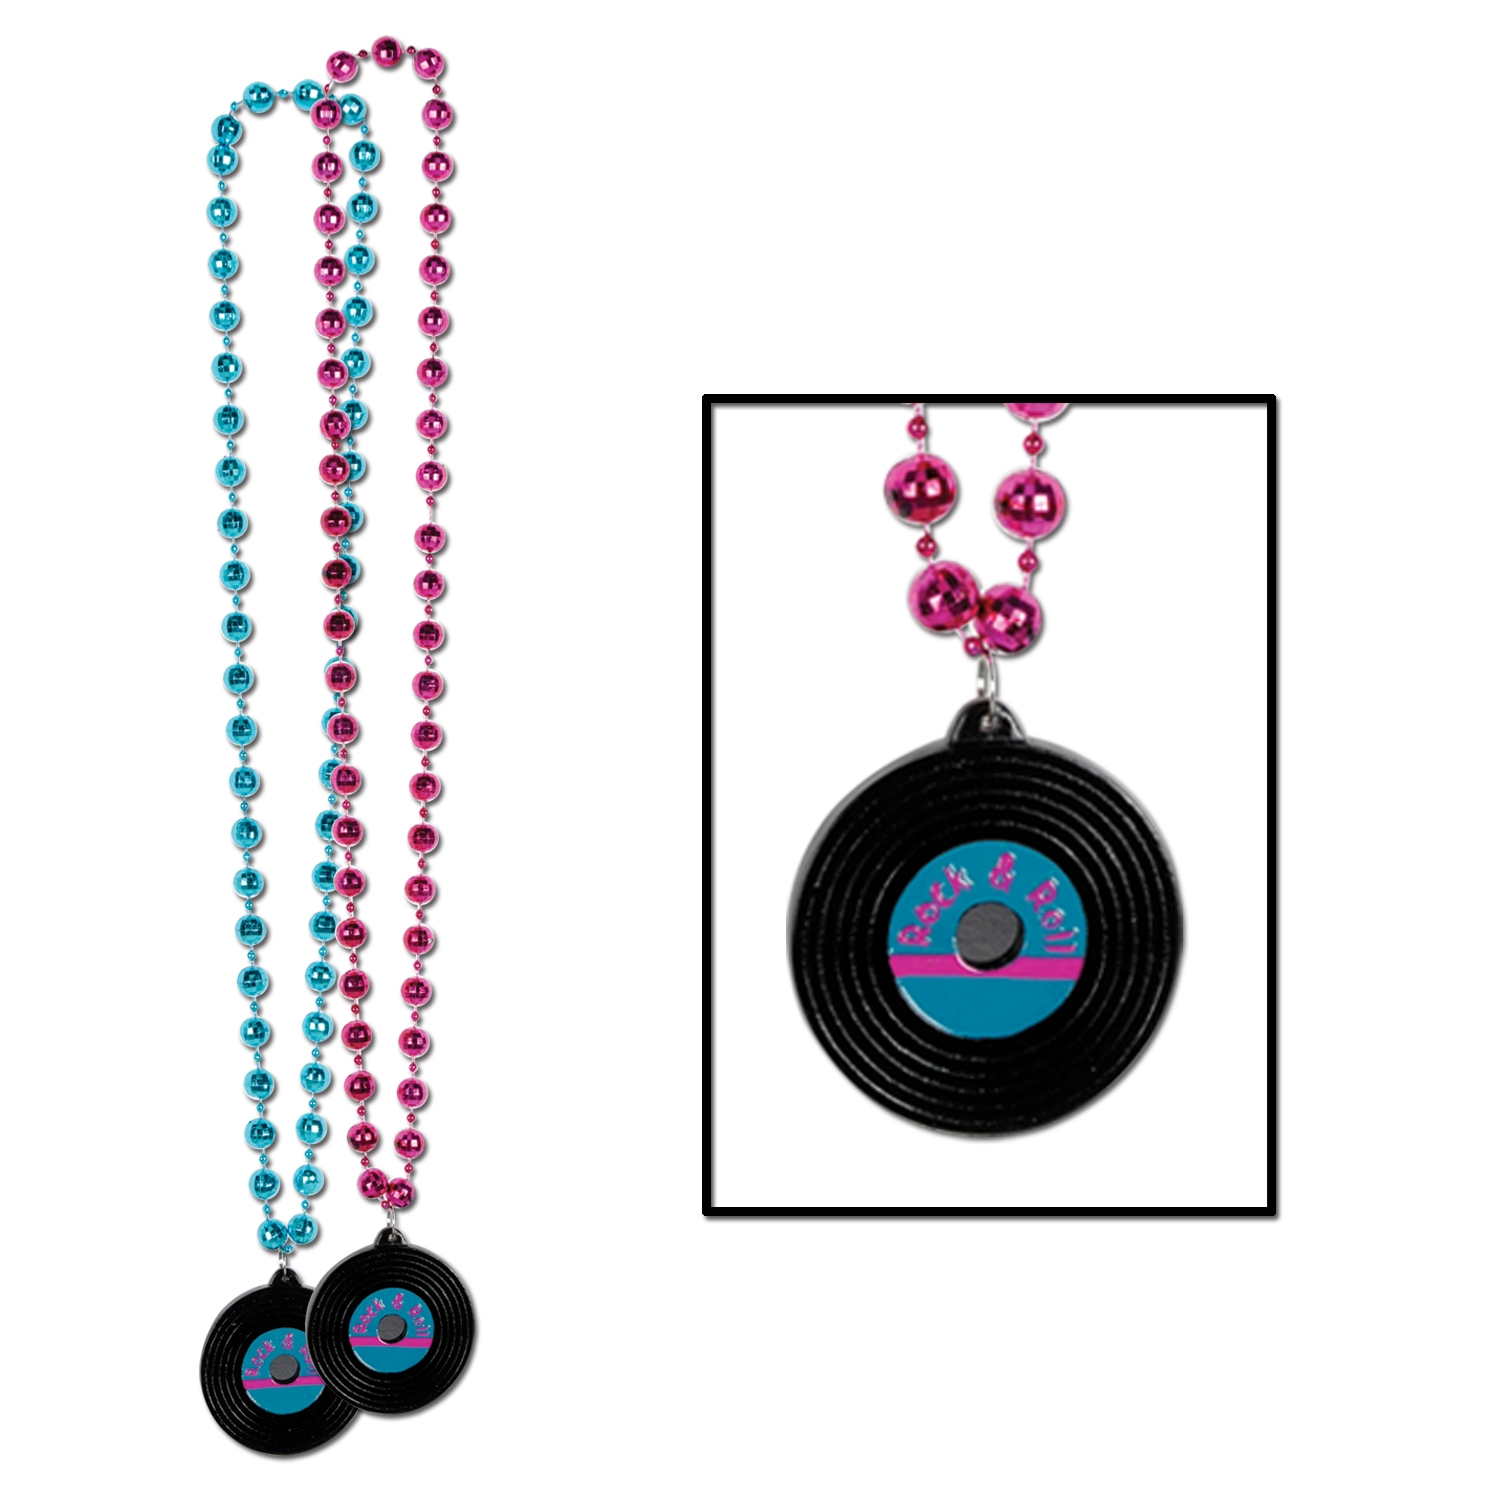 Beads w/Rock & Roll Record Medallion (Pack of 12) Rock and Roll, Beads, rock and roll beads, beads with record medallion, party beads